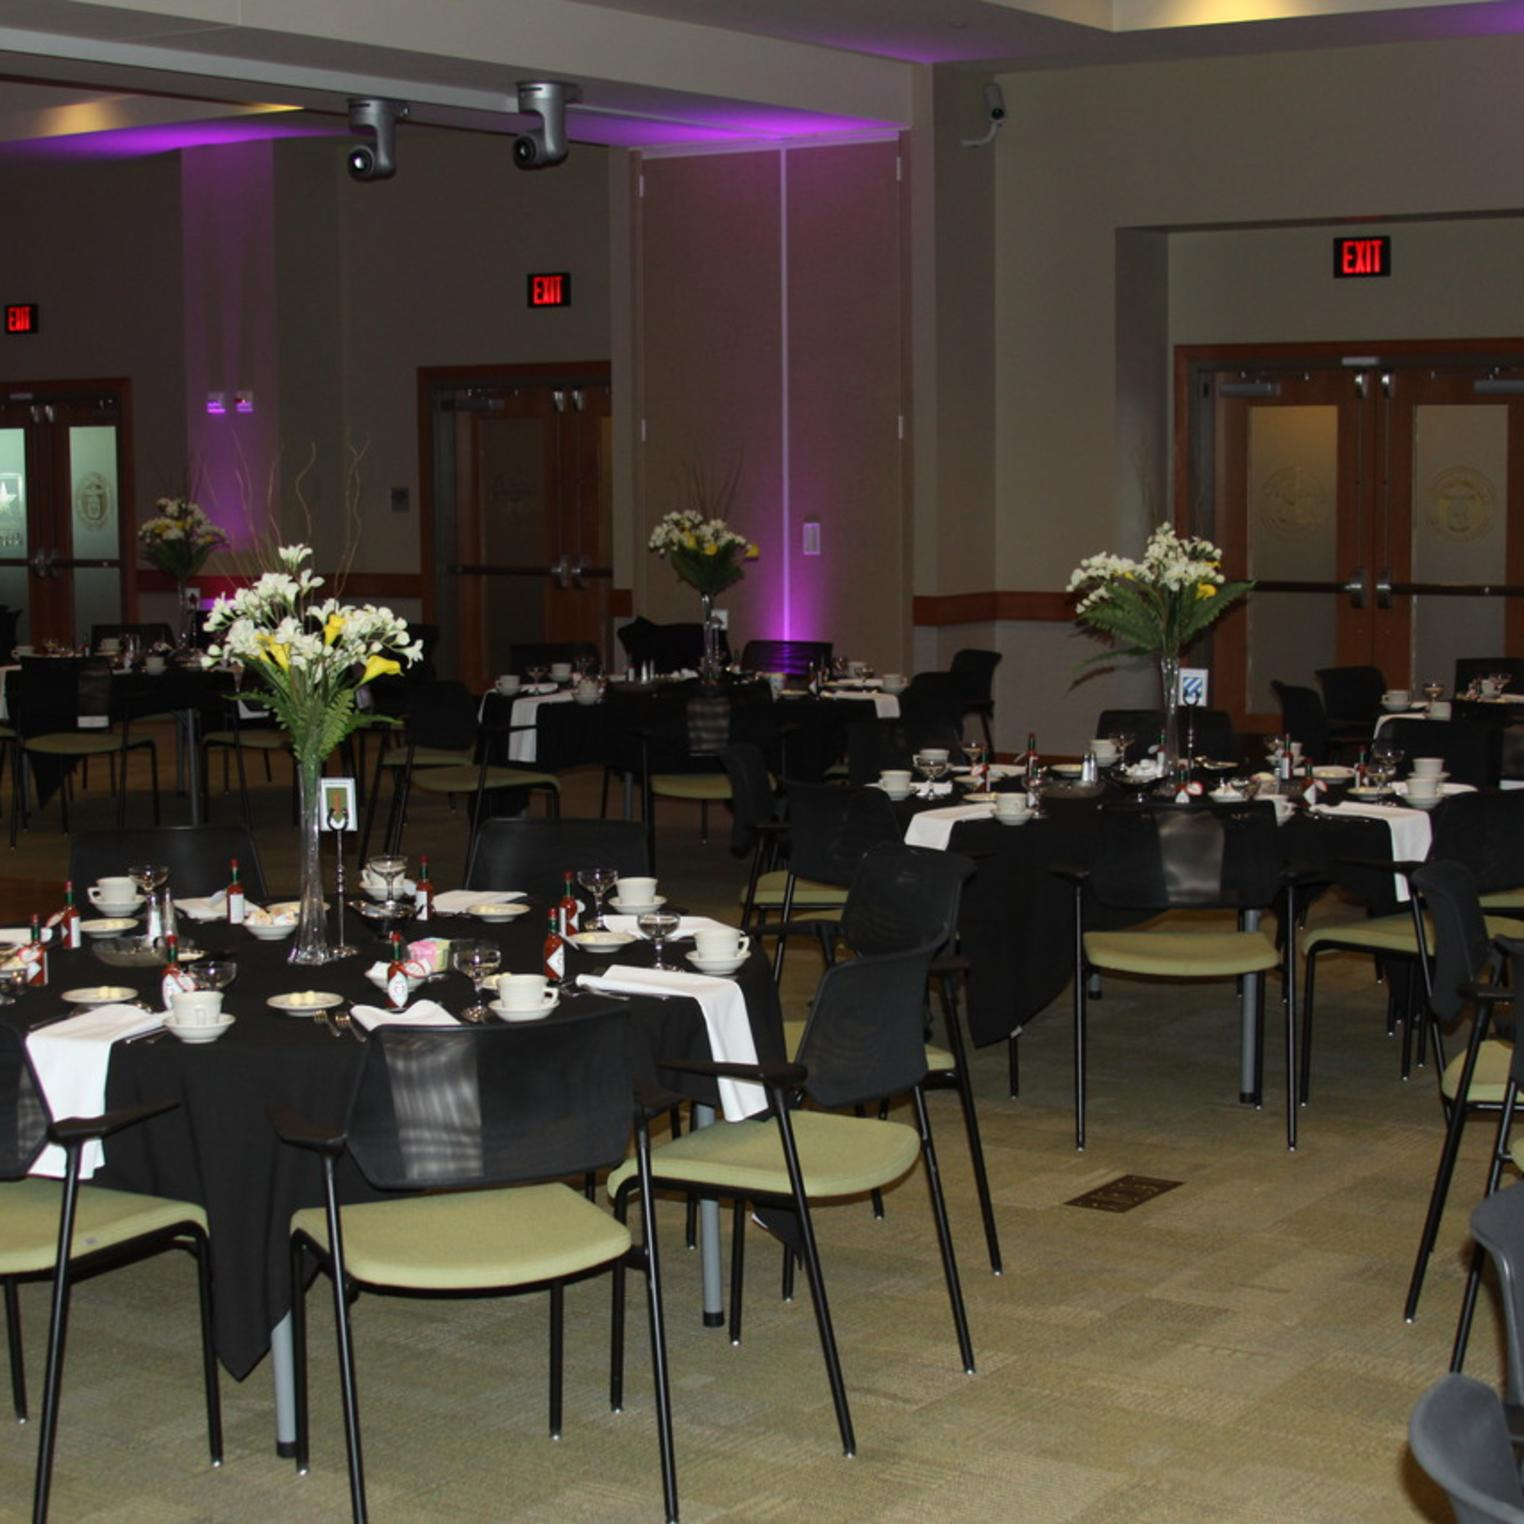 U.S. Army Heritage & Education Center Banquet Space